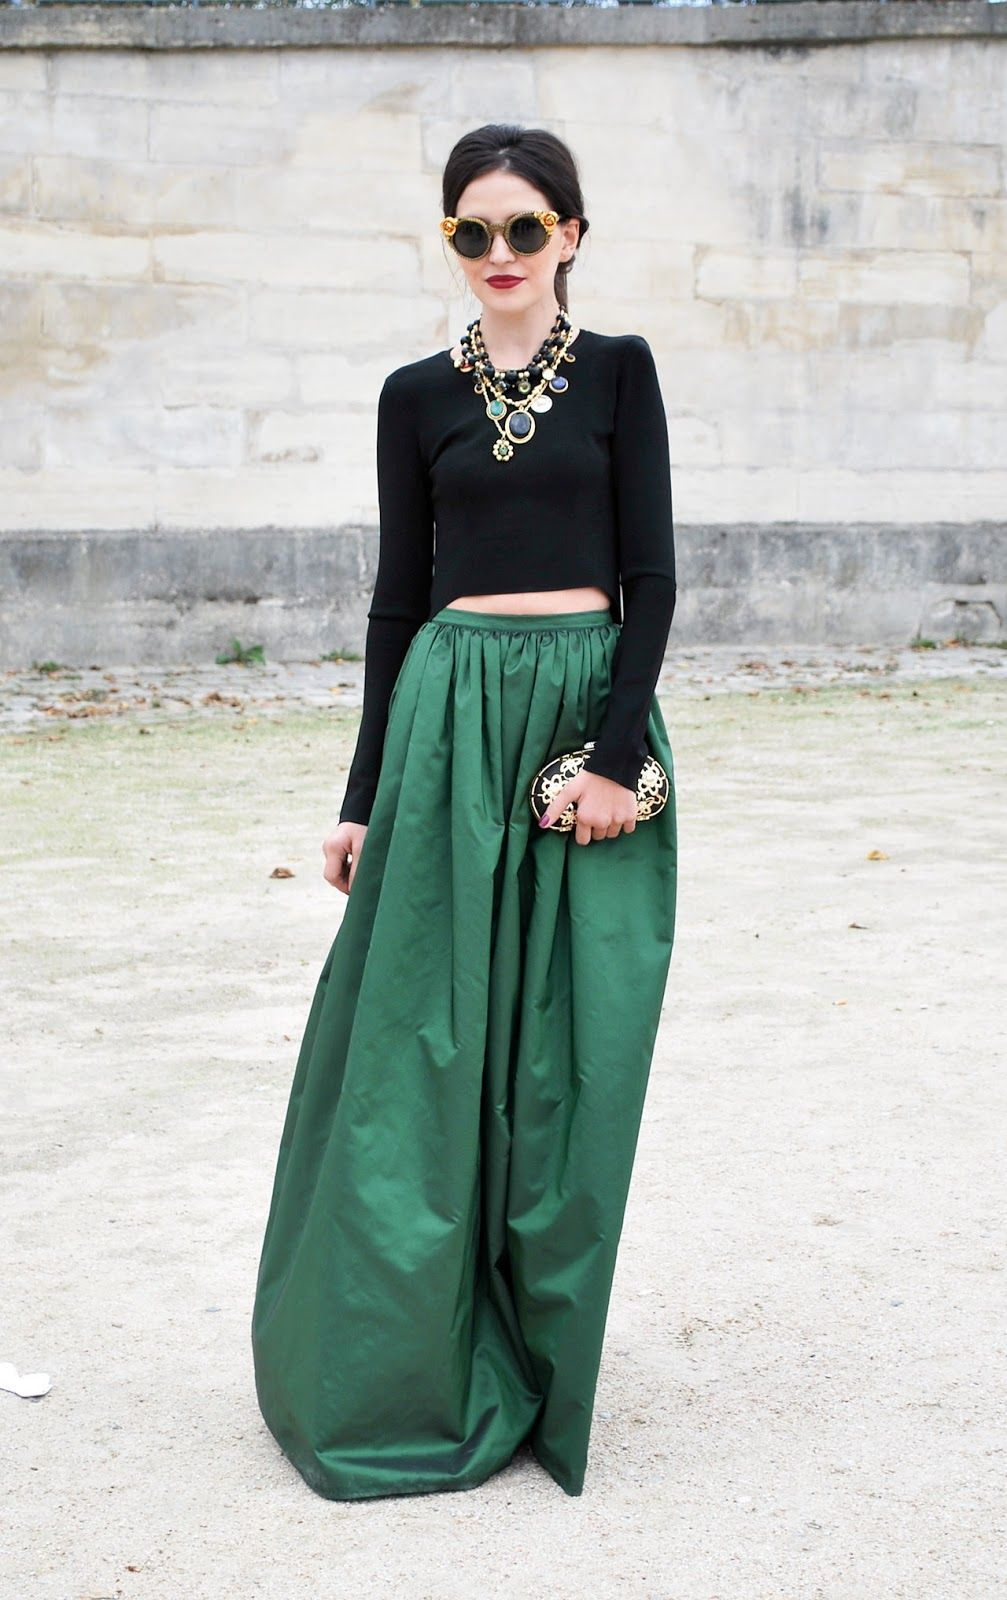 emerald green skirt, black top, jewels and shades Twirling Clare ...